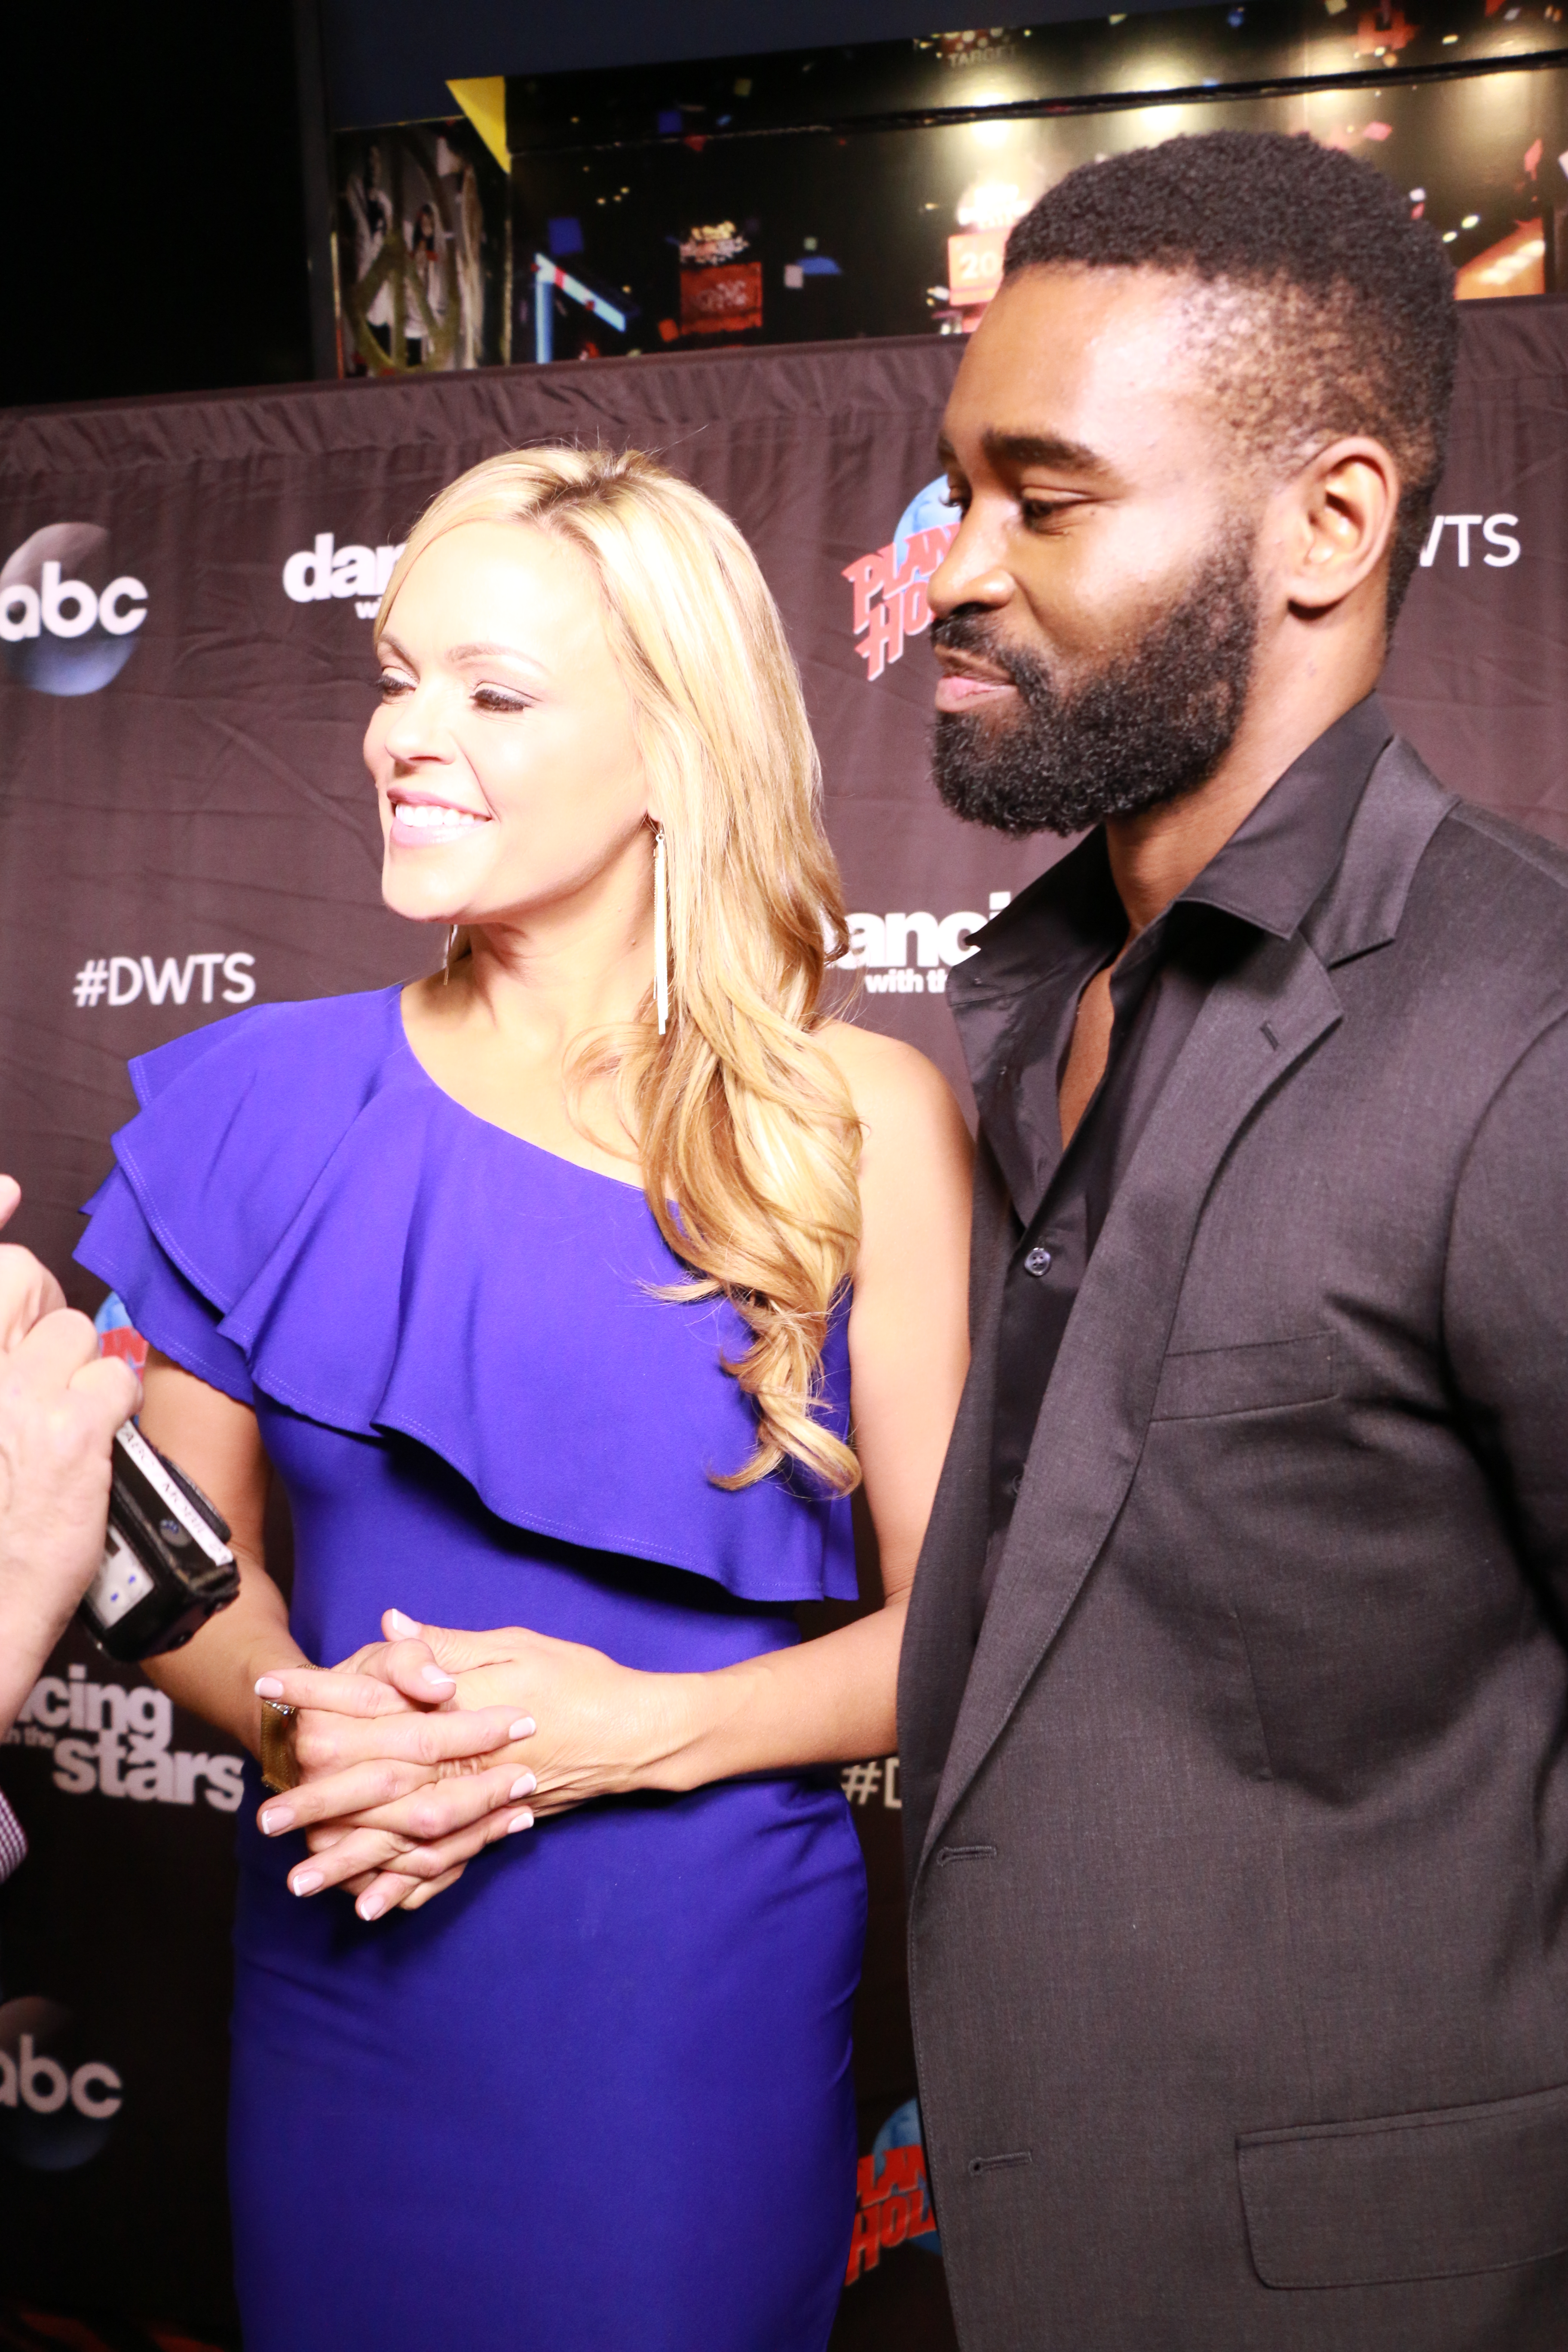 <div class='meta'><div class='origin-logo' data-origin='none'></div><span class='caption-text' data-credit='Heather Harkins/WABC'>Jennie Finch with Keo Motsepe on the red carpet of the ''Dancing with the Stars'' cast announcement on ''Good Morning America.''</span></div>